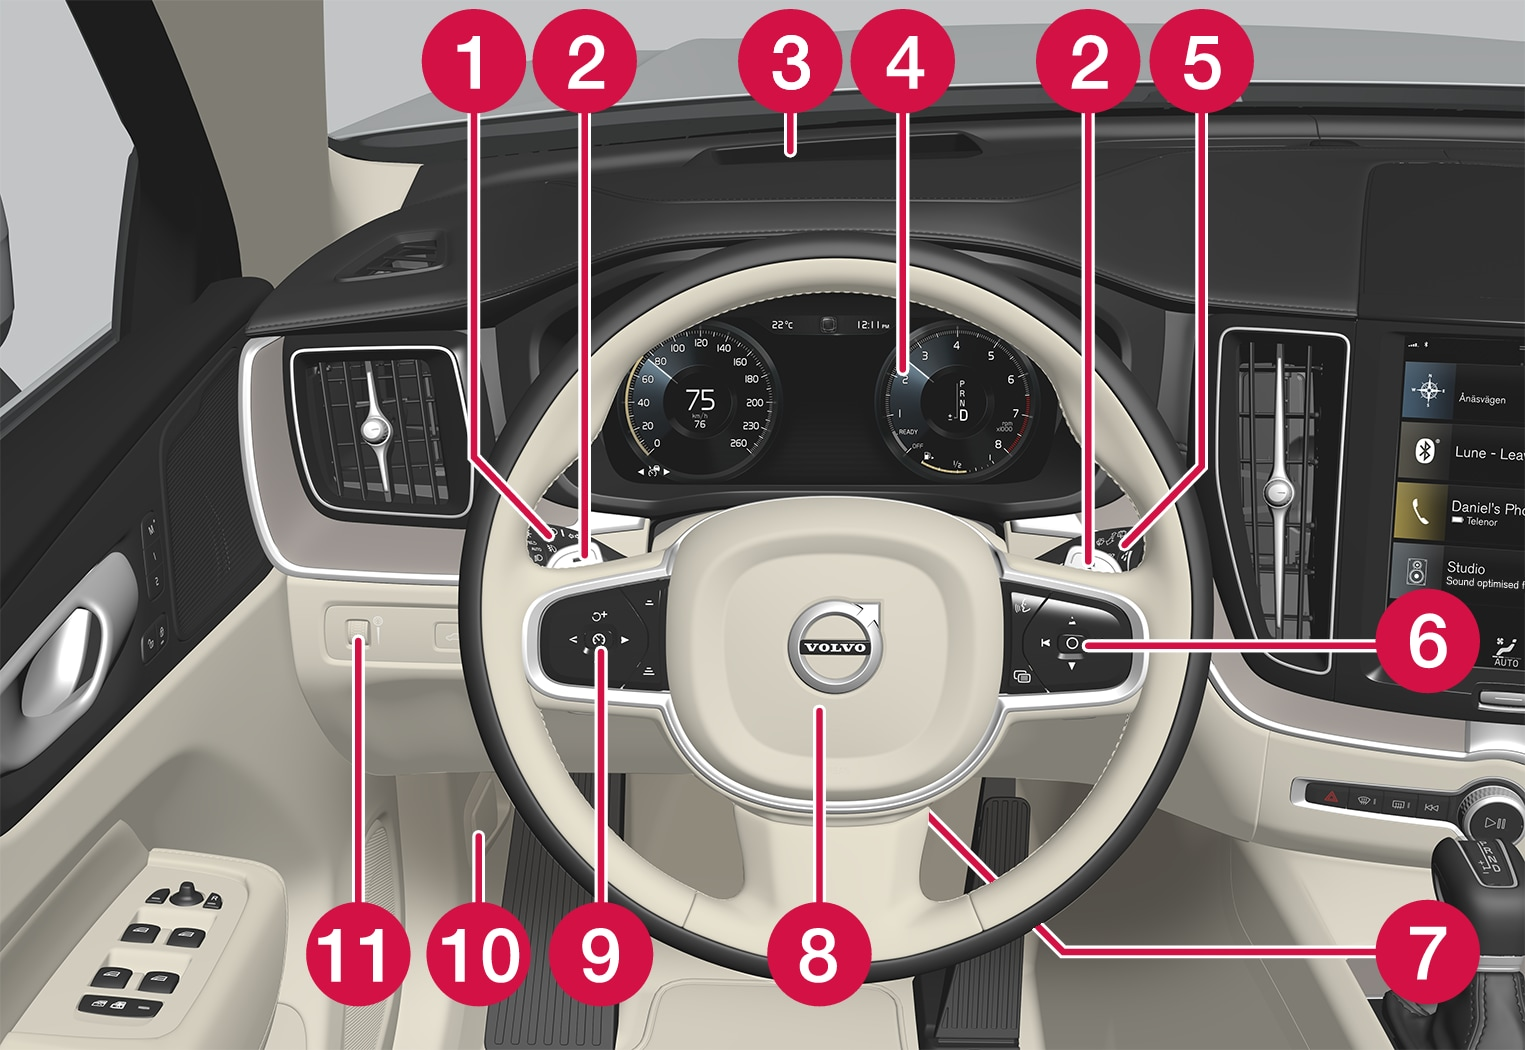 P5-1717-XC60-Instrument and controls overview LHD